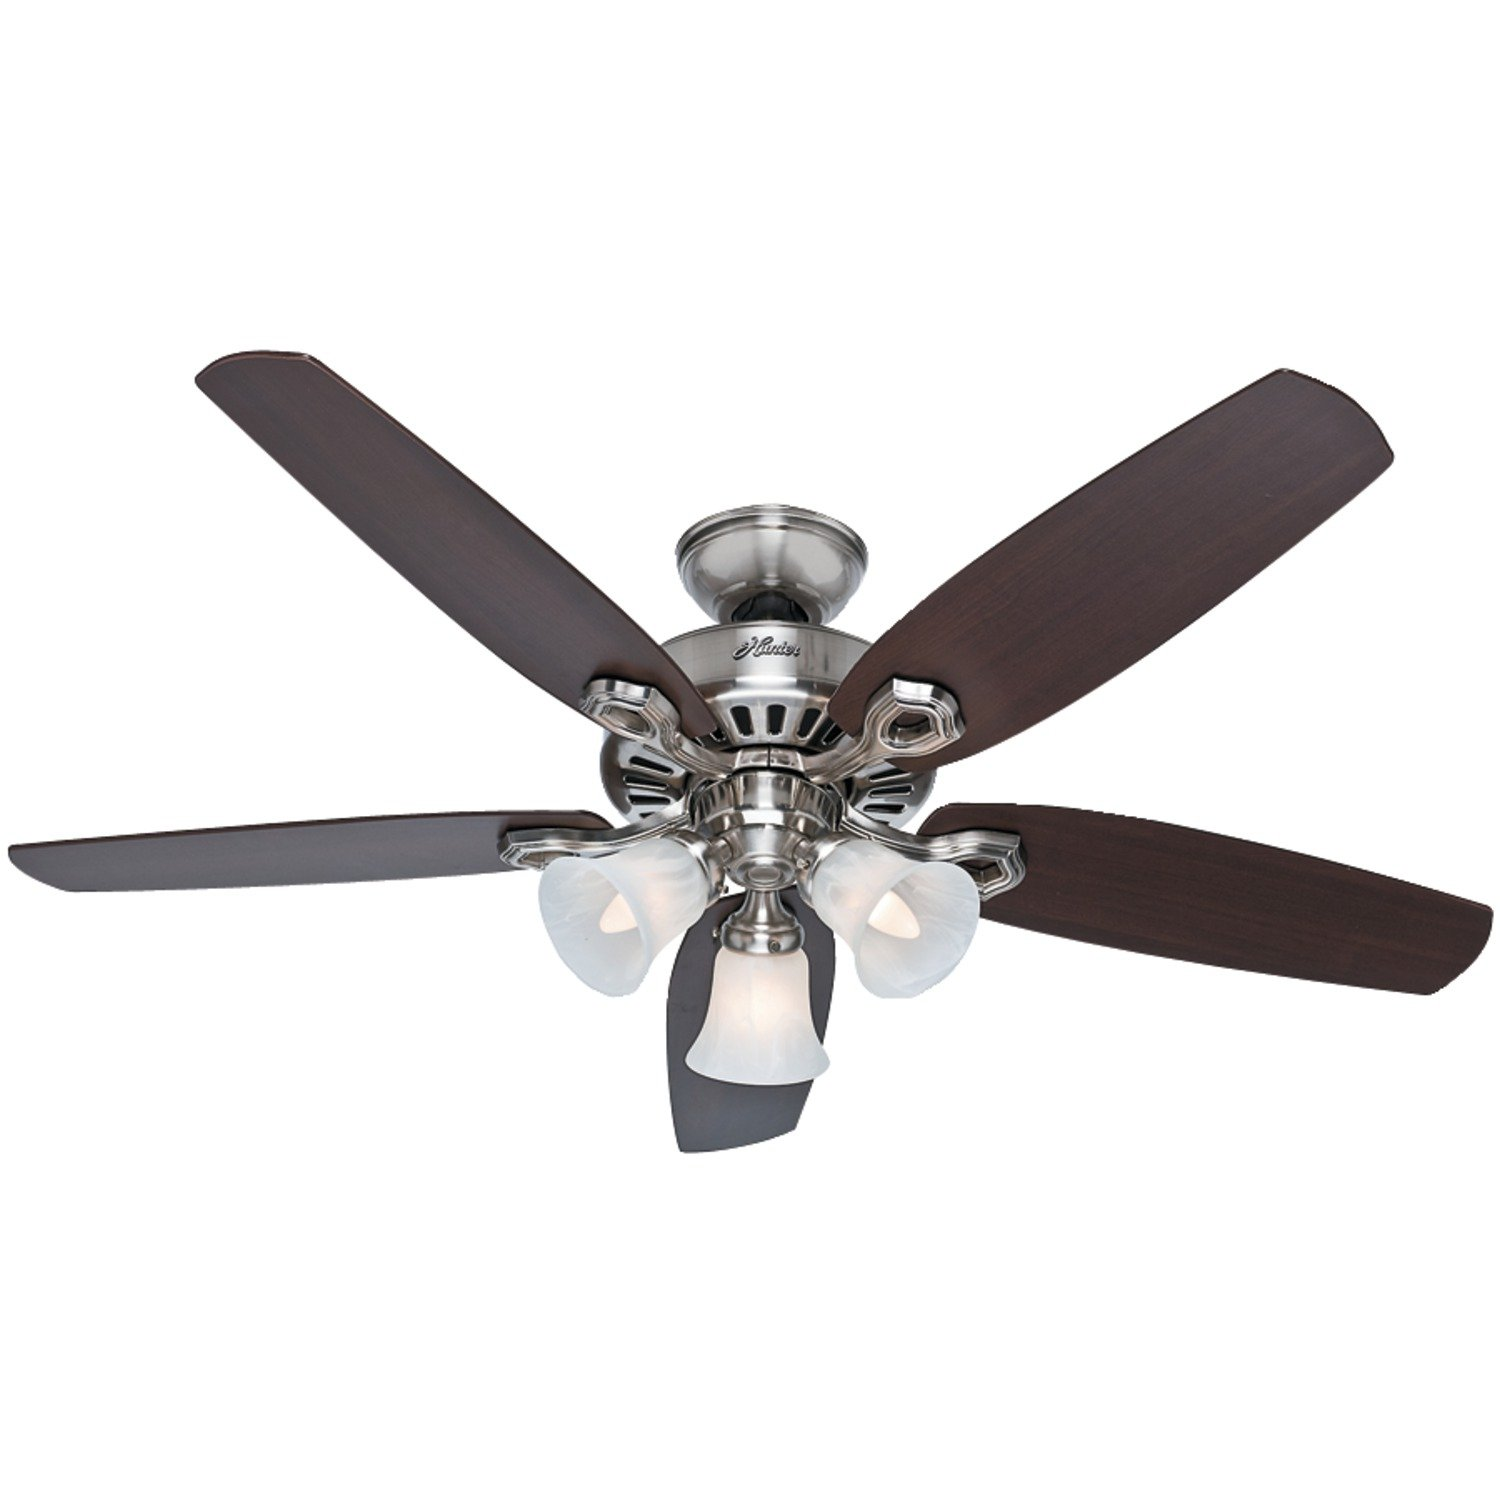 Top ten best ceiling fans reviews sure that your fan remains quiet for life in addition it has got three fun speeds low medium and high it comes with a life time motor warranty aloadofball Images